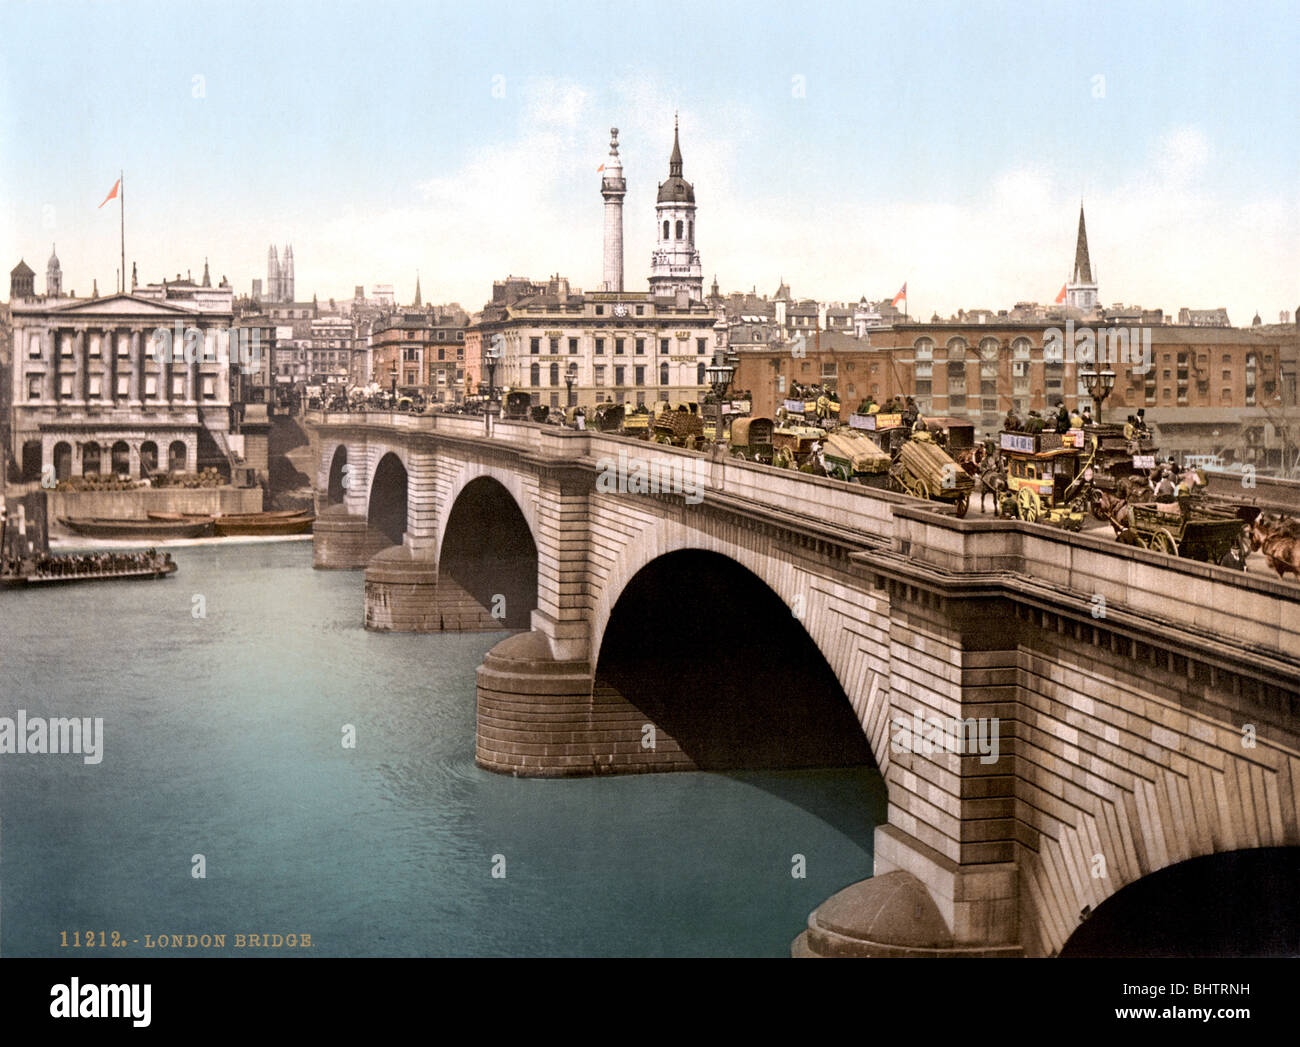 Photochrome print c1890s of the old London Bridge over the River Thames designed by engineer John Rennie and opened - Stock Image